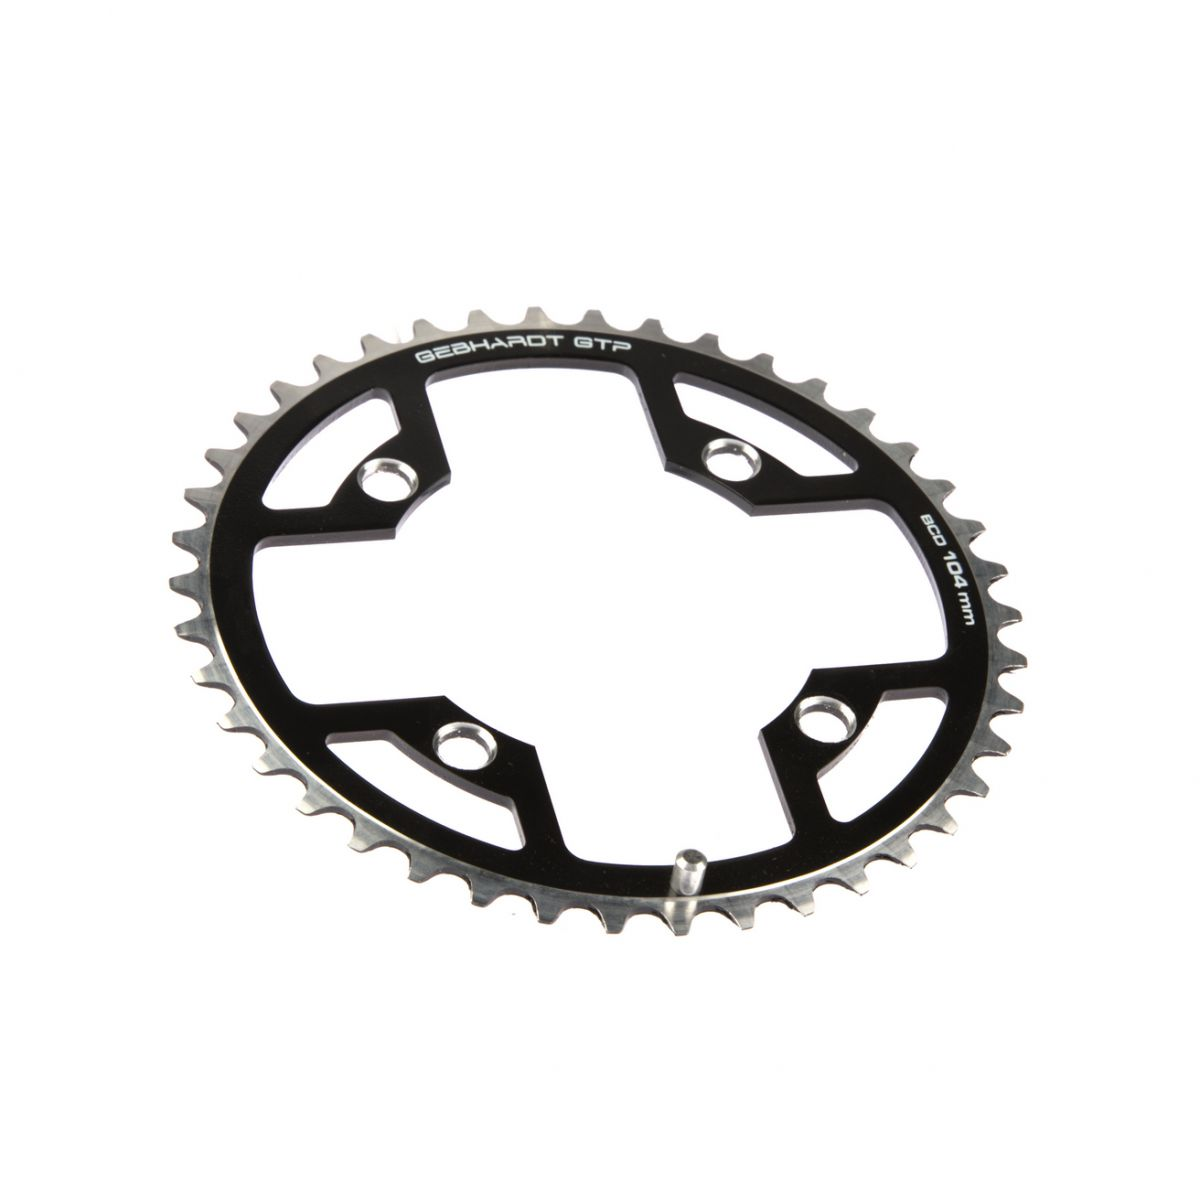 gebhardt chainring cover rock ring classic bcd 104 mm 4hole 42t black